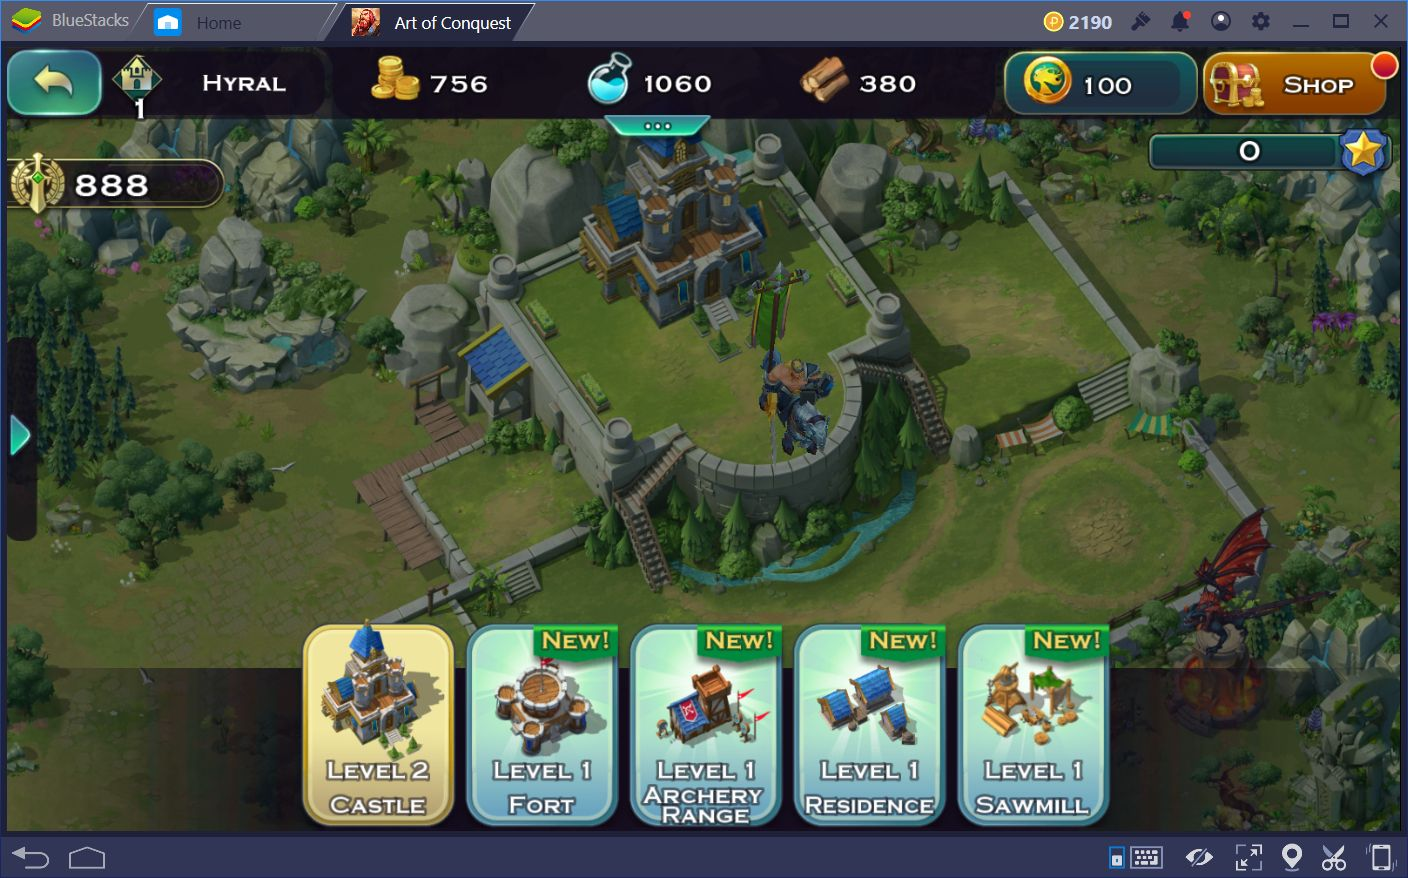 Beginner's Guide for Art of Conquest